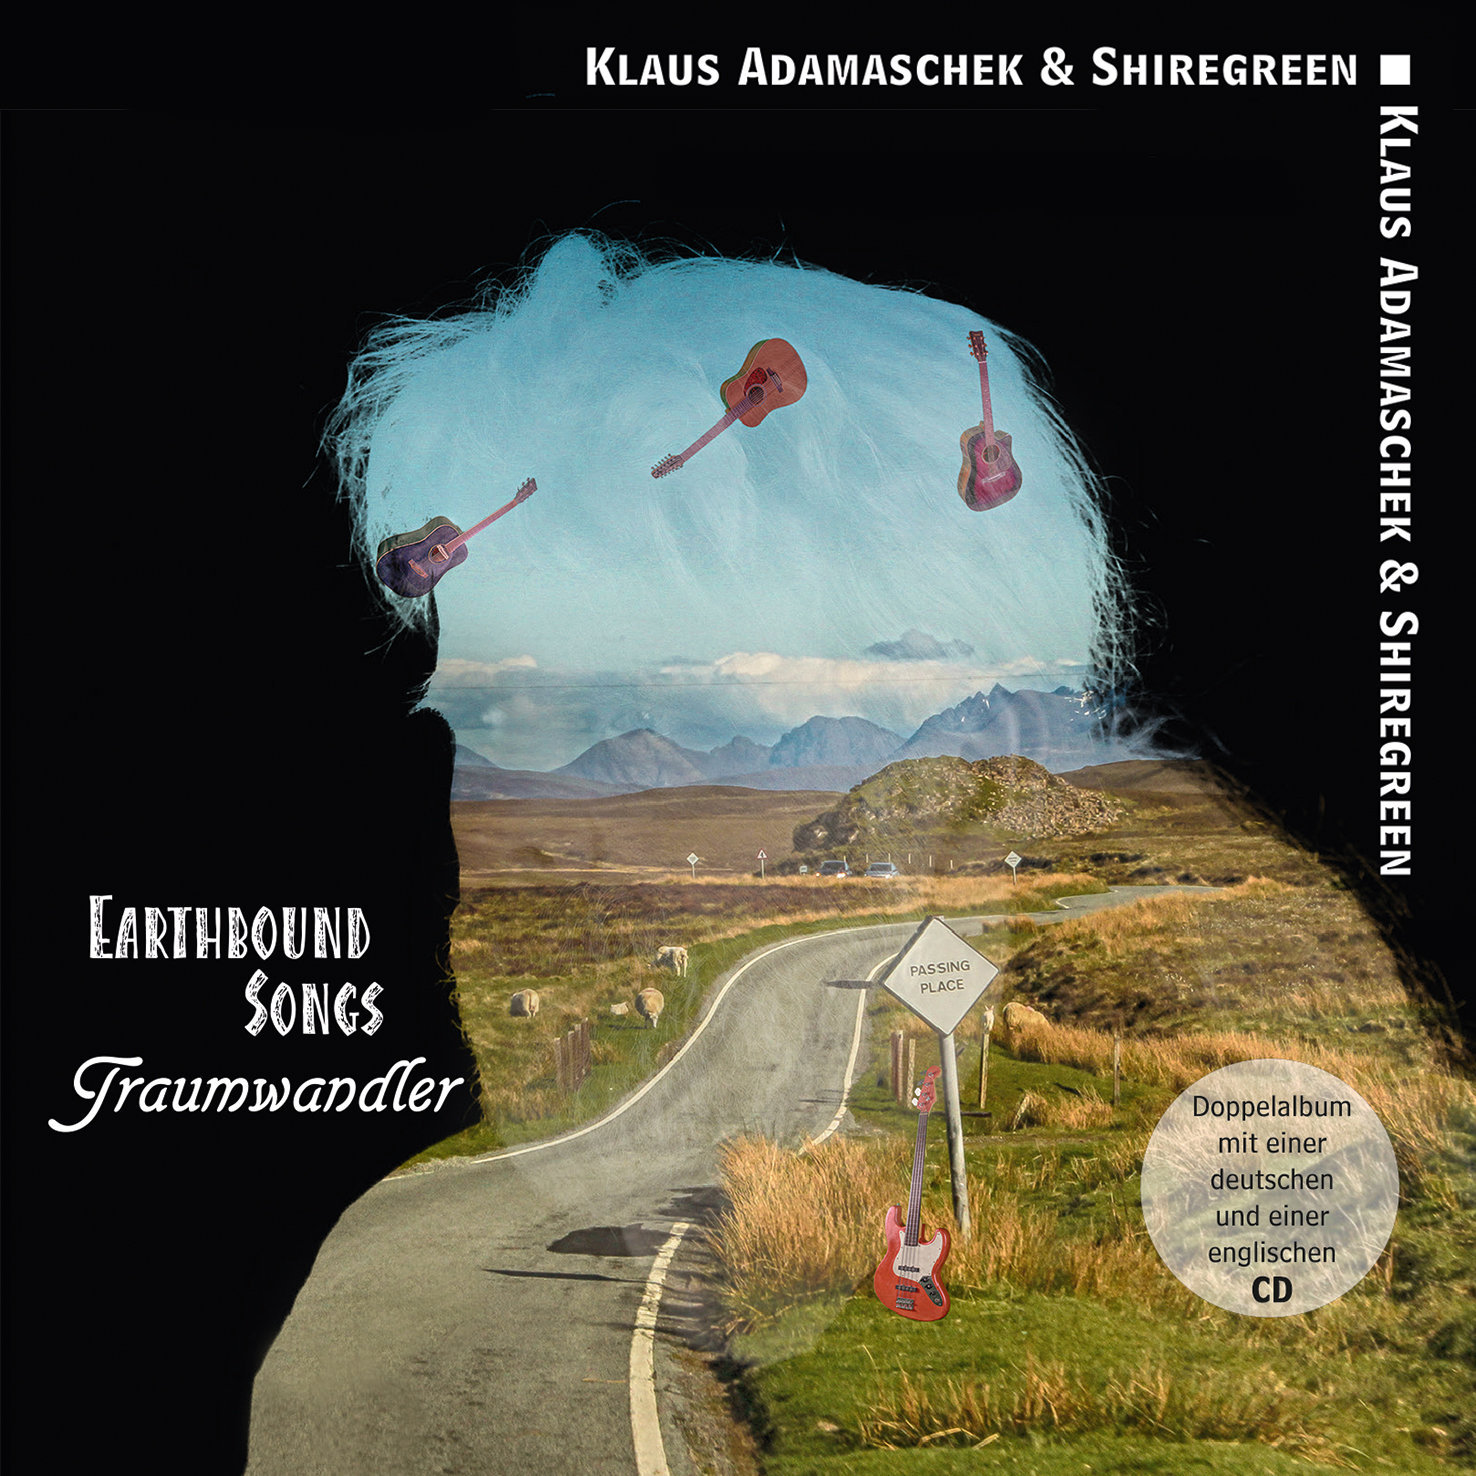 Shiregreen_Klaus Adamaschek_Traumwandler_Earthbound songs release